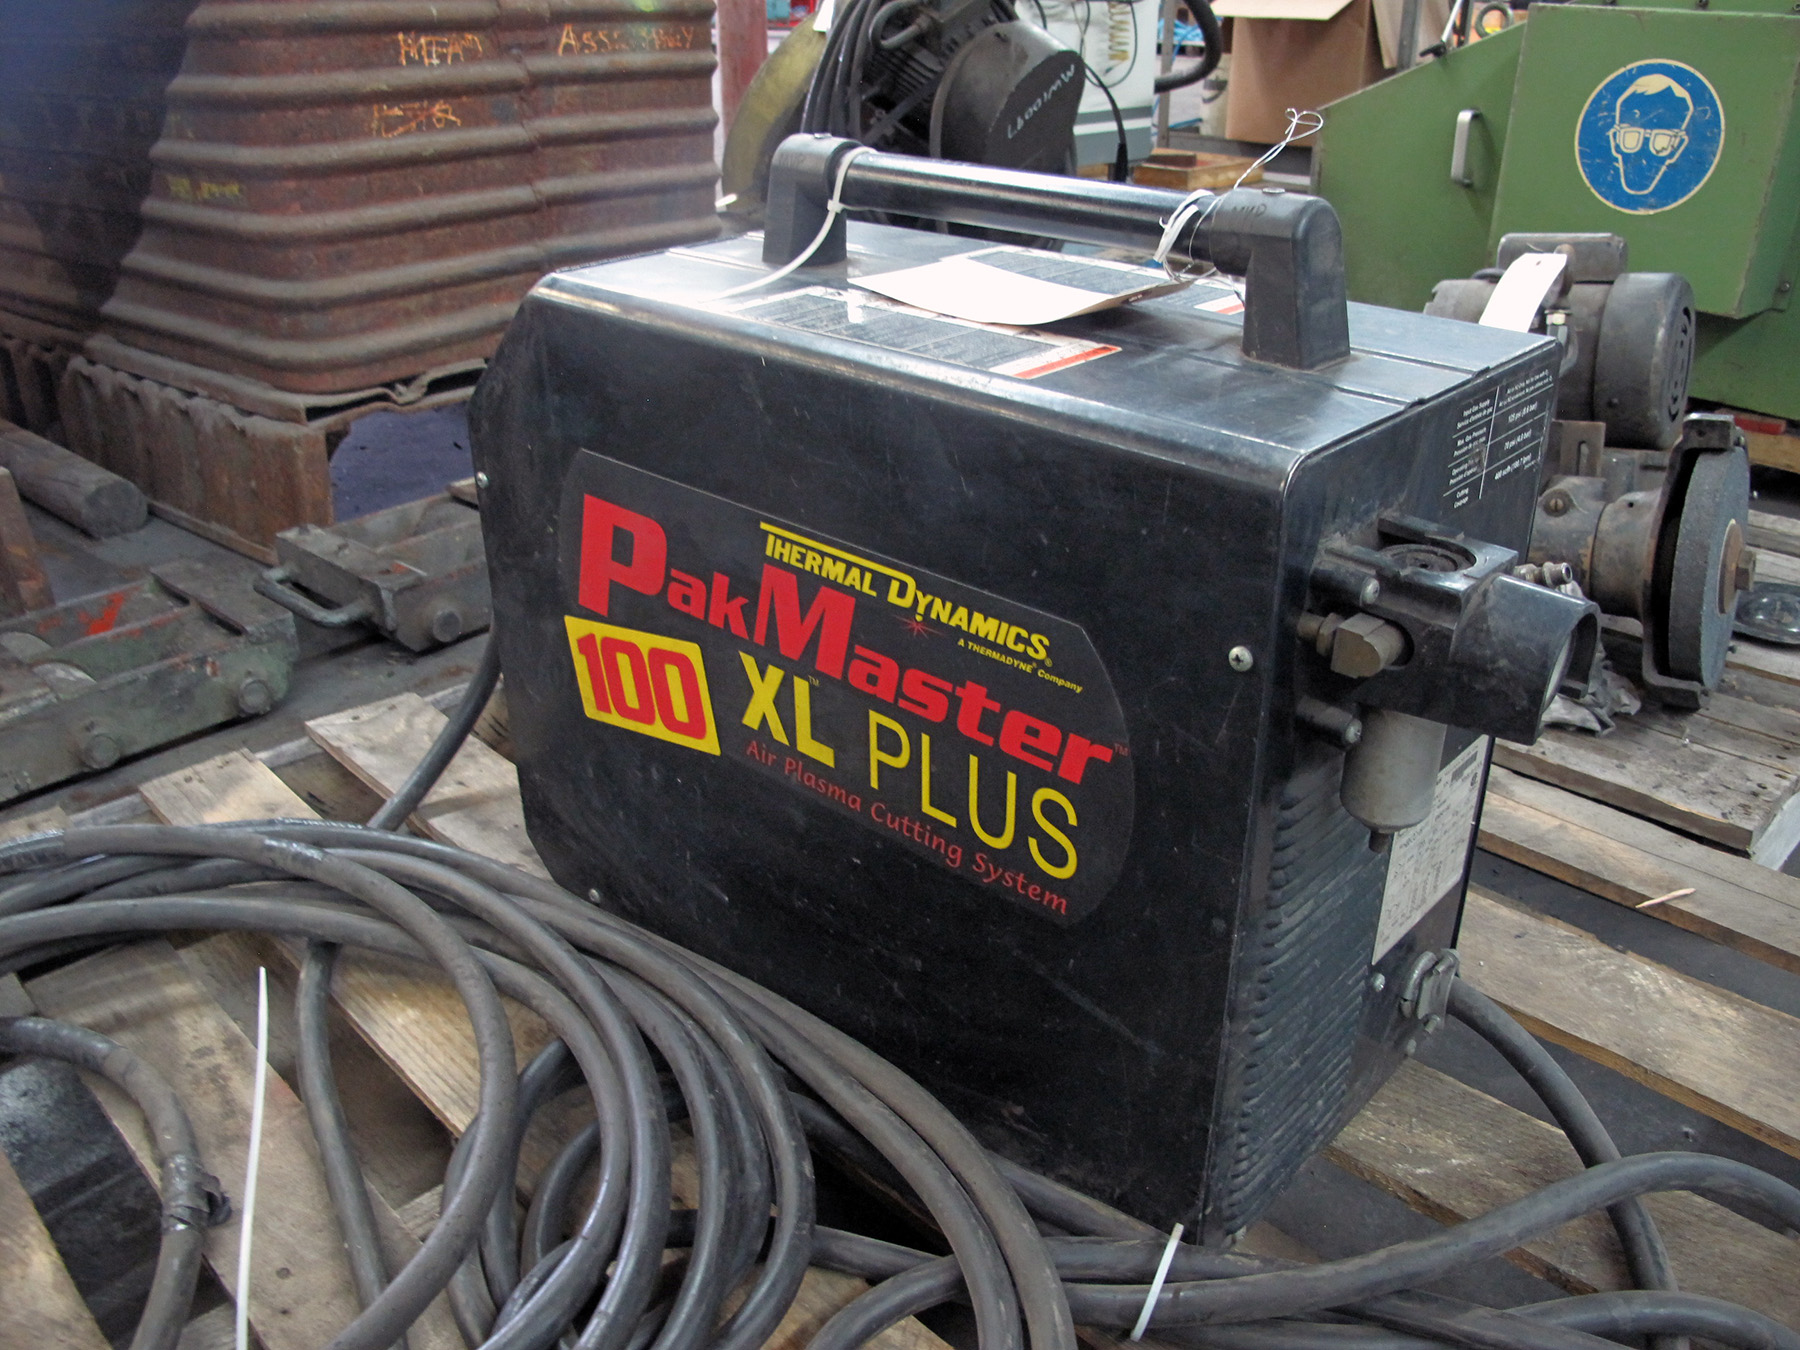 Lot 1 - PLASMA CUTTER, THERMAL DYNAMICS PAK MASTER 100 XL PLUS, new 2001, S/N 01150908